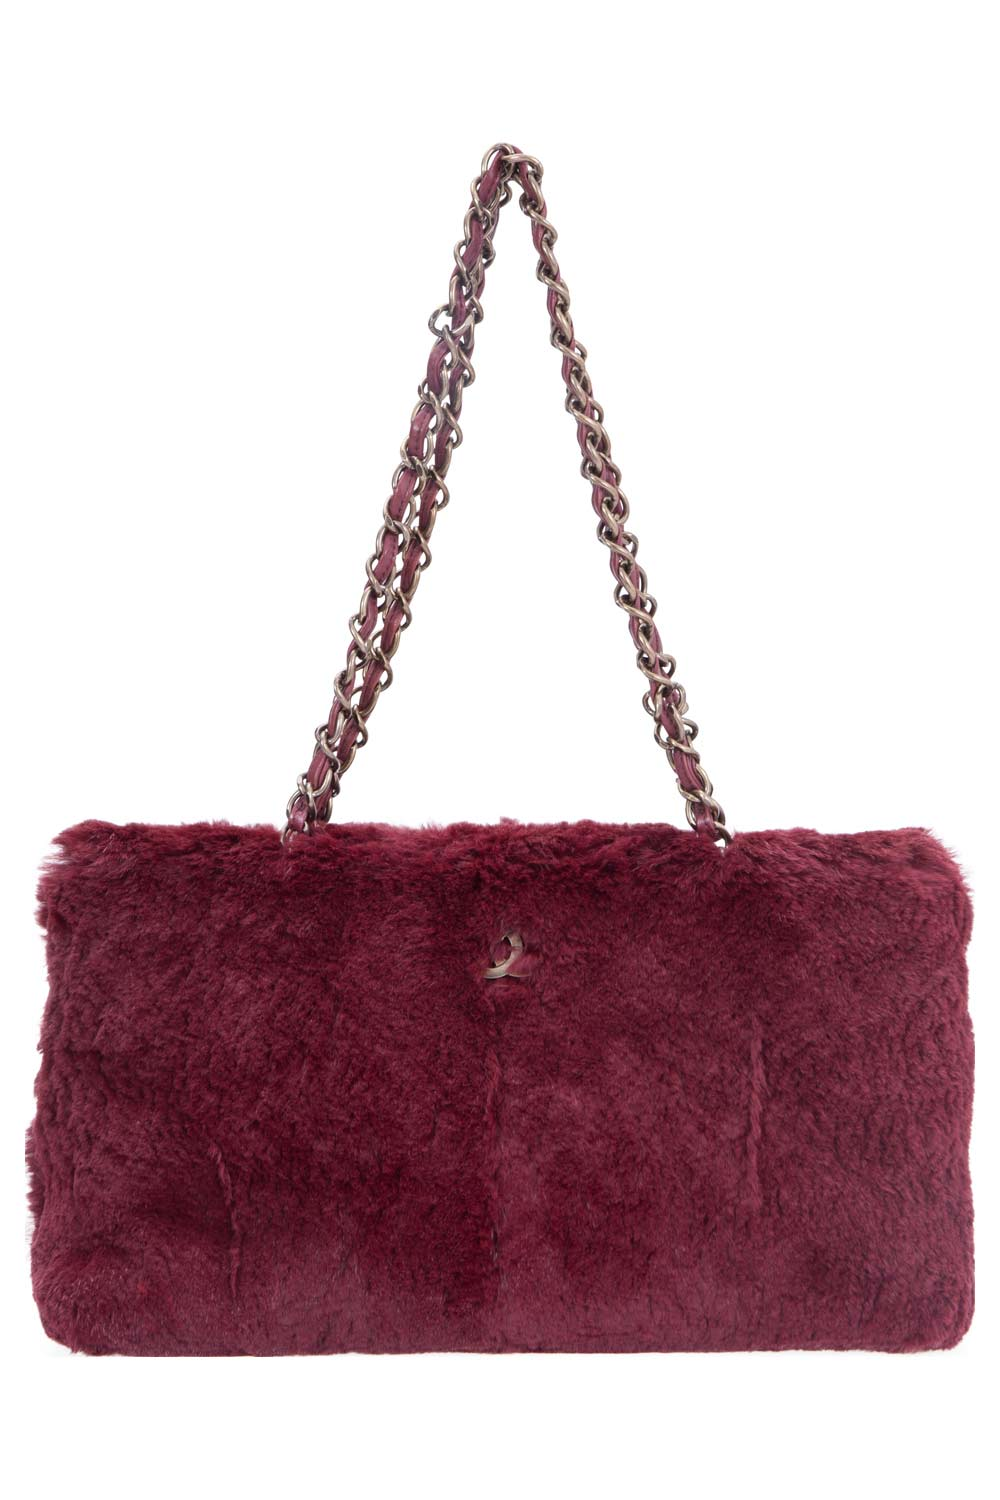 Chanel Maroon Fur Chain Shoulder Bag